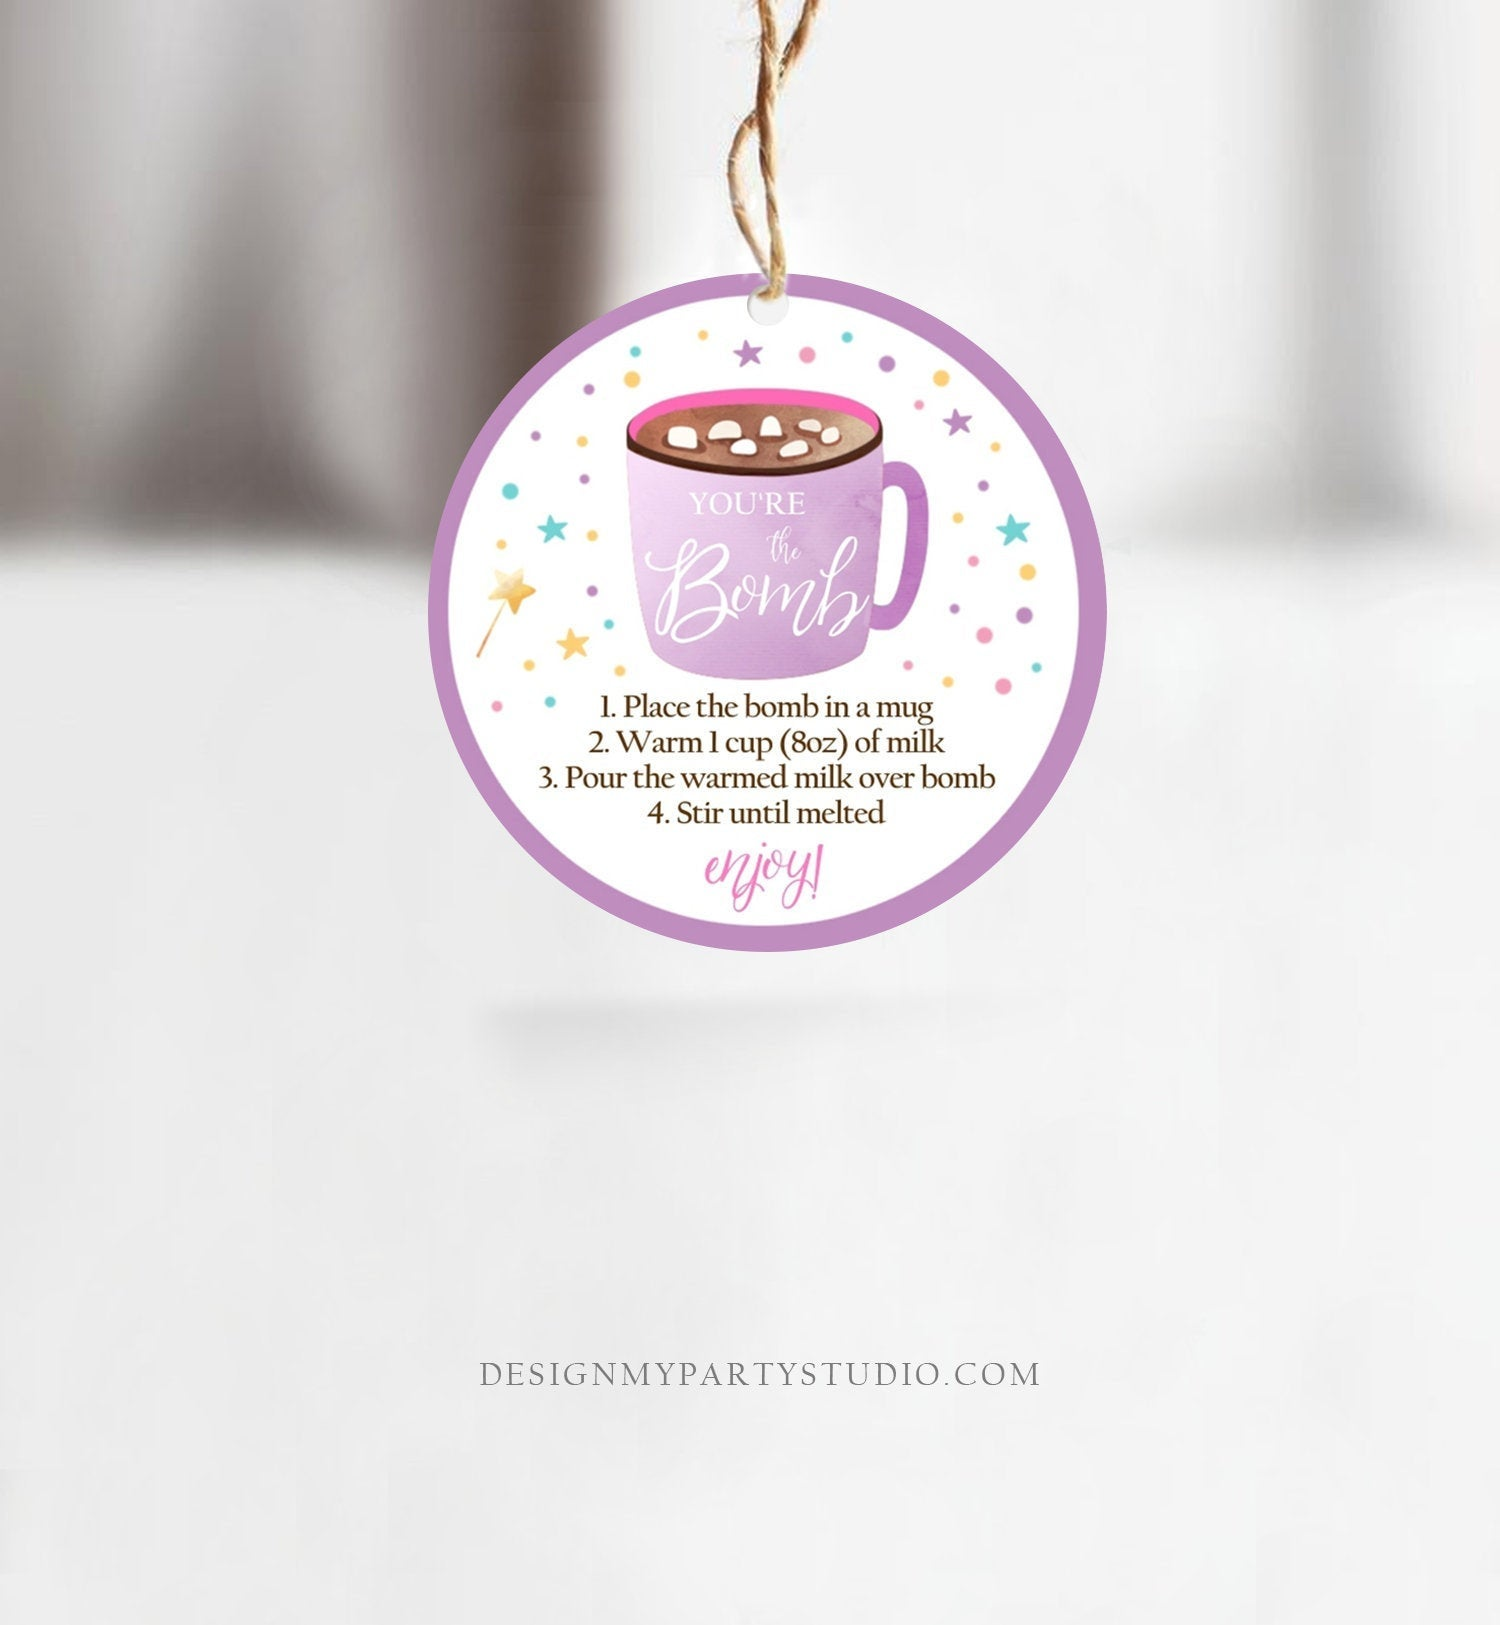 Editable Hot Chocolate Bomb Tags Bomb Instructions Valentine You're The Bomb Sticker Magical Purple Lavender Digital PRINTABLE 0336